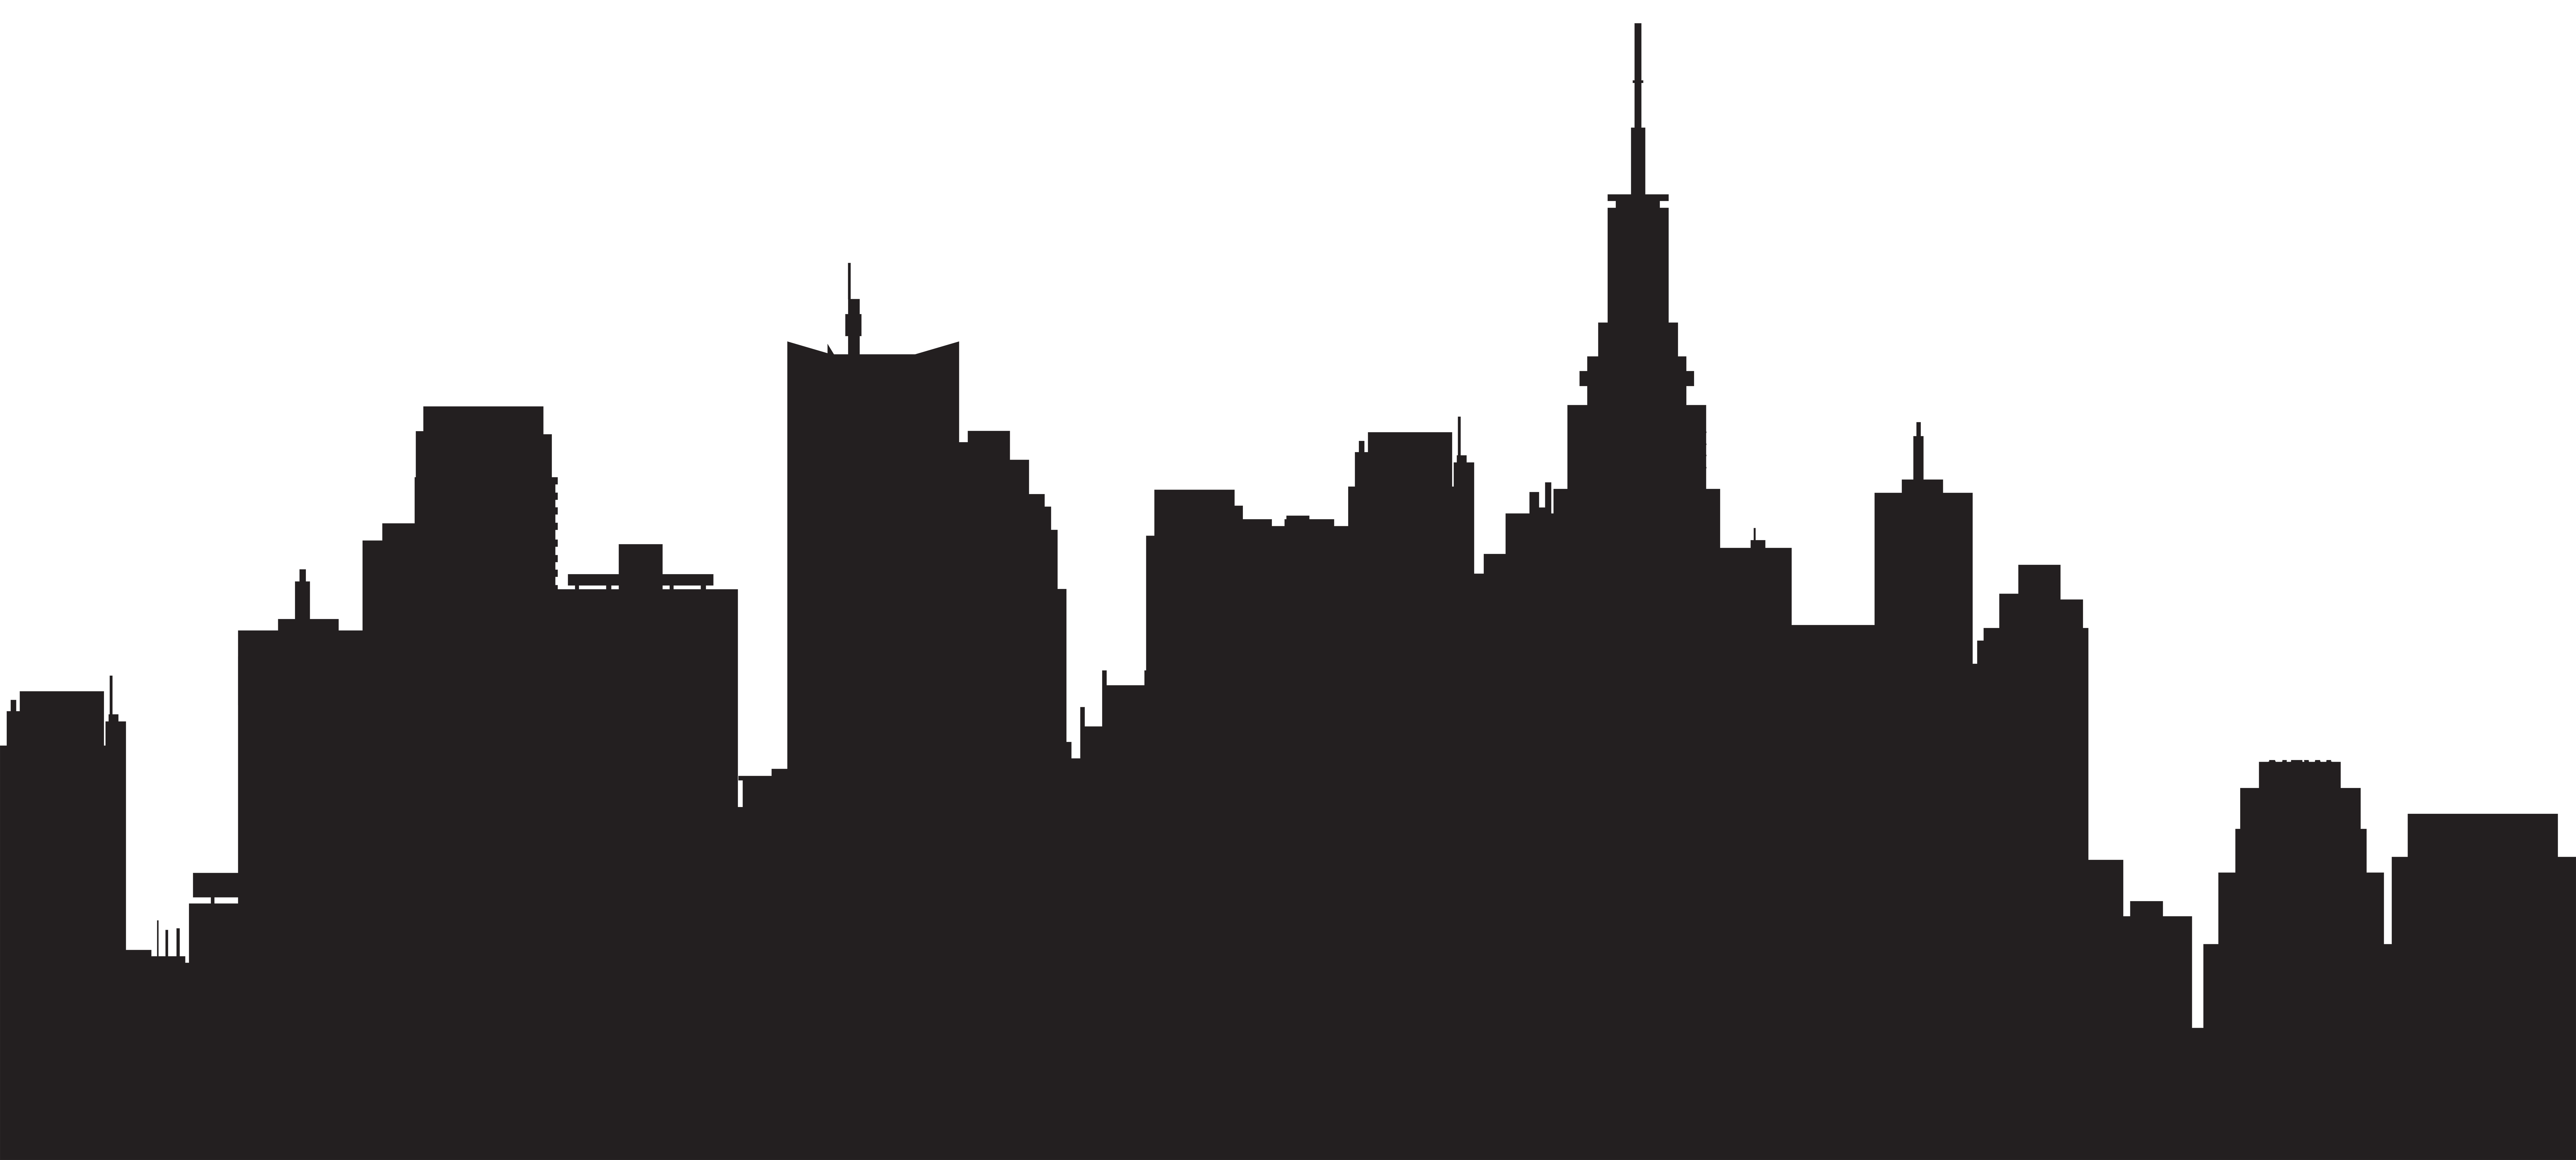 City Silhouette Clipart